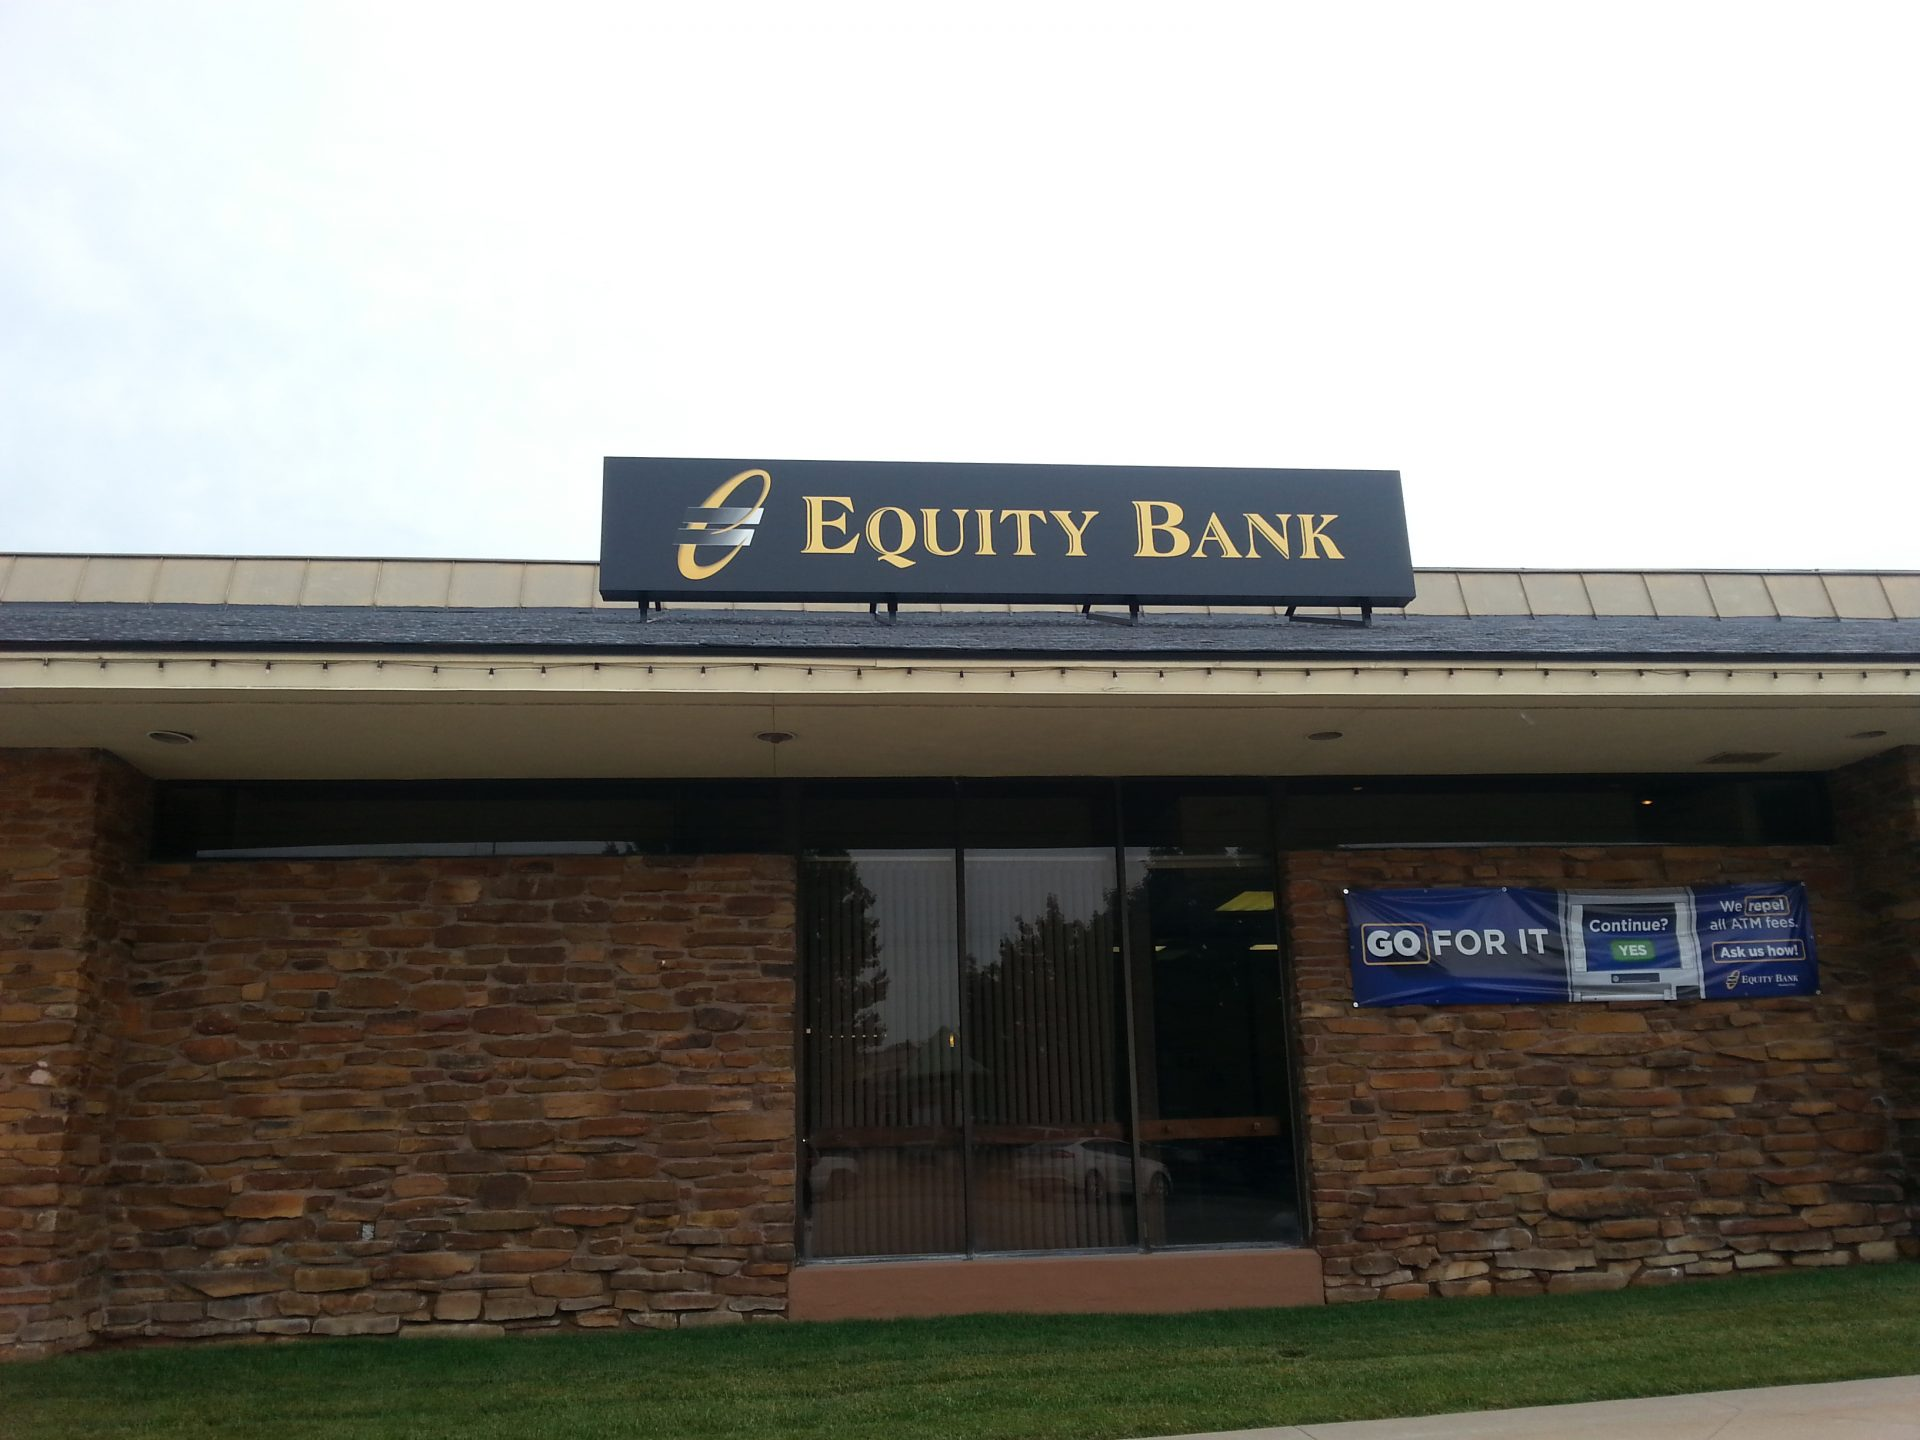 Equity Bank Independence branch exterior.